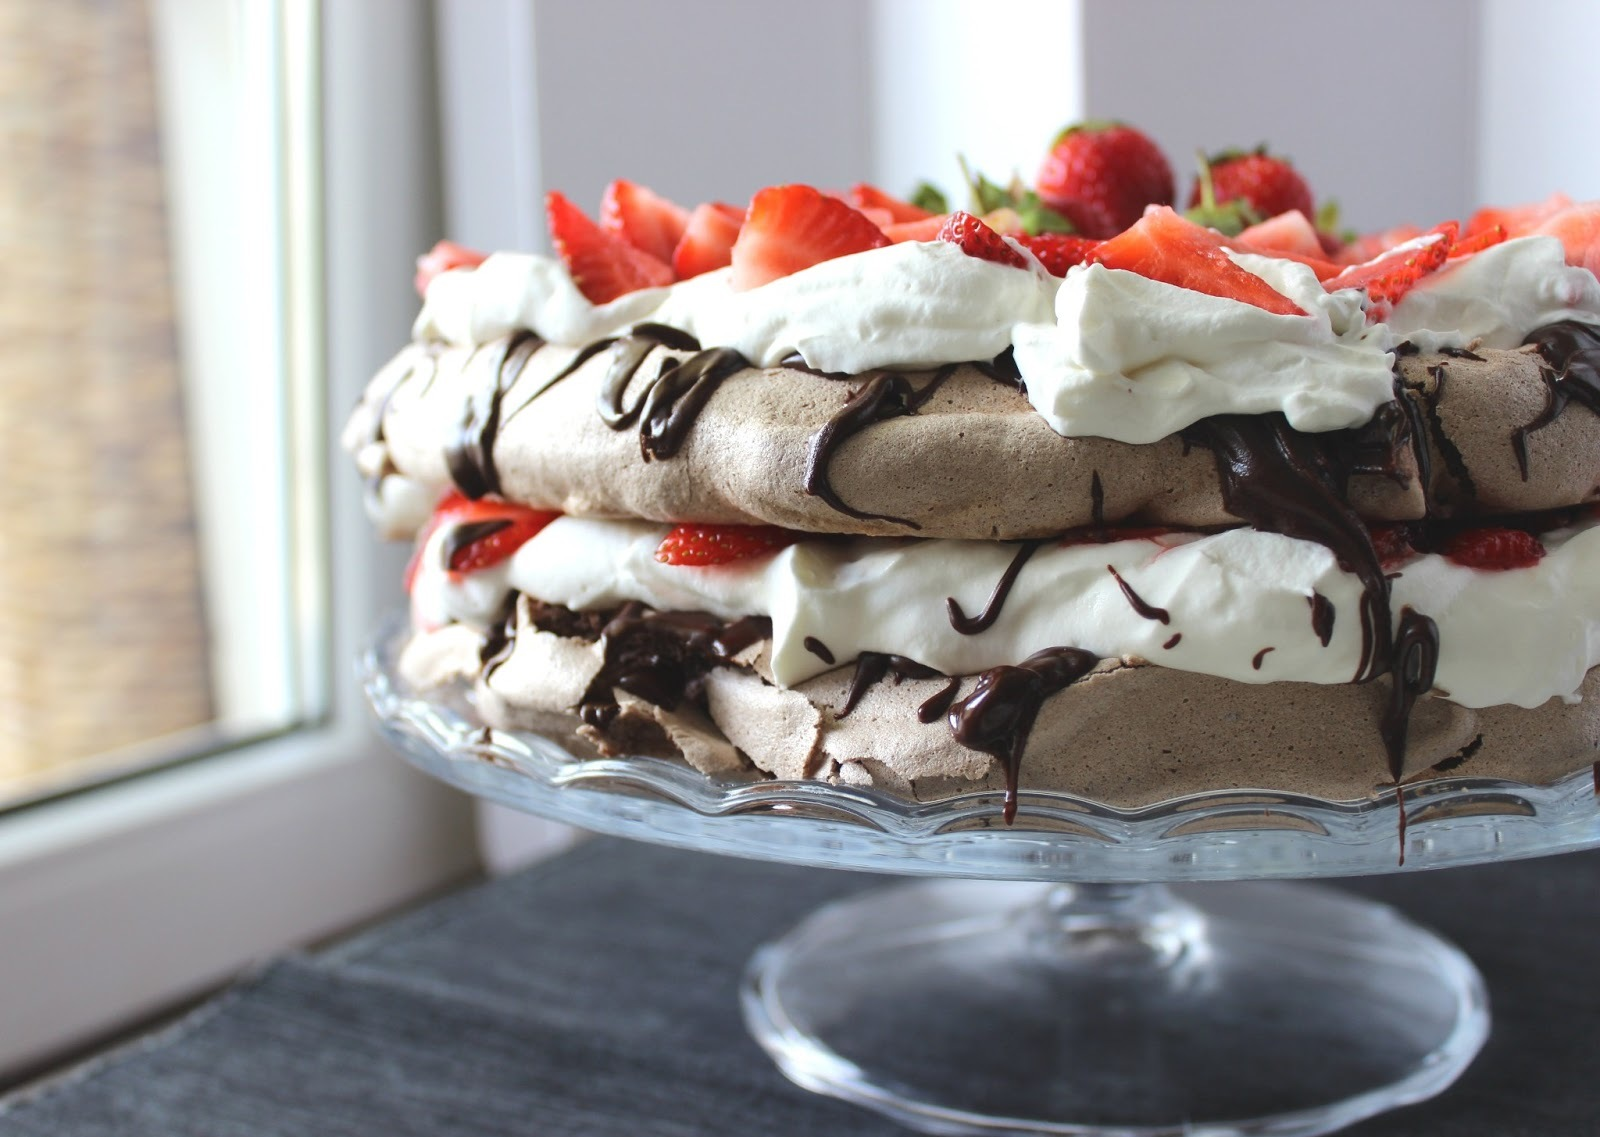 Čokoladna Pavlova sa jagodama VOL.2 / Chocolate Pavlova with Strawberries